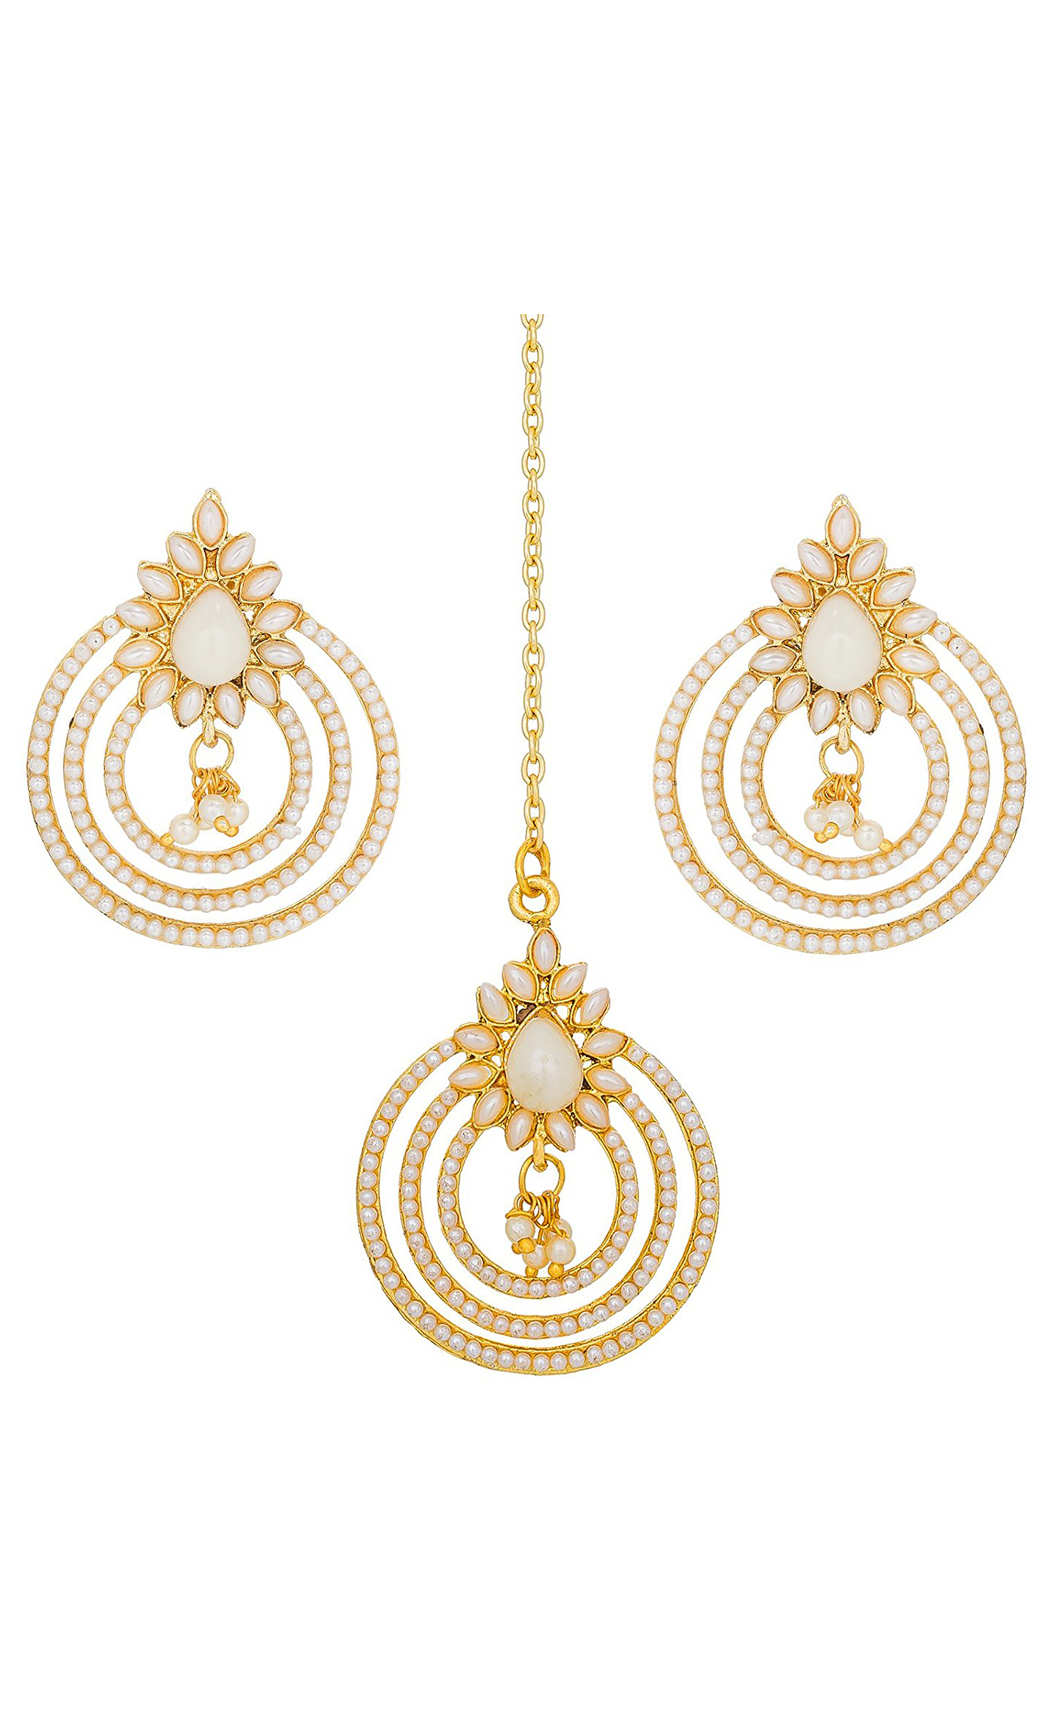 Pearl Earrings and Maang Tikka Gold Plated Set | Indian Bridal Jewellery Sets With Price